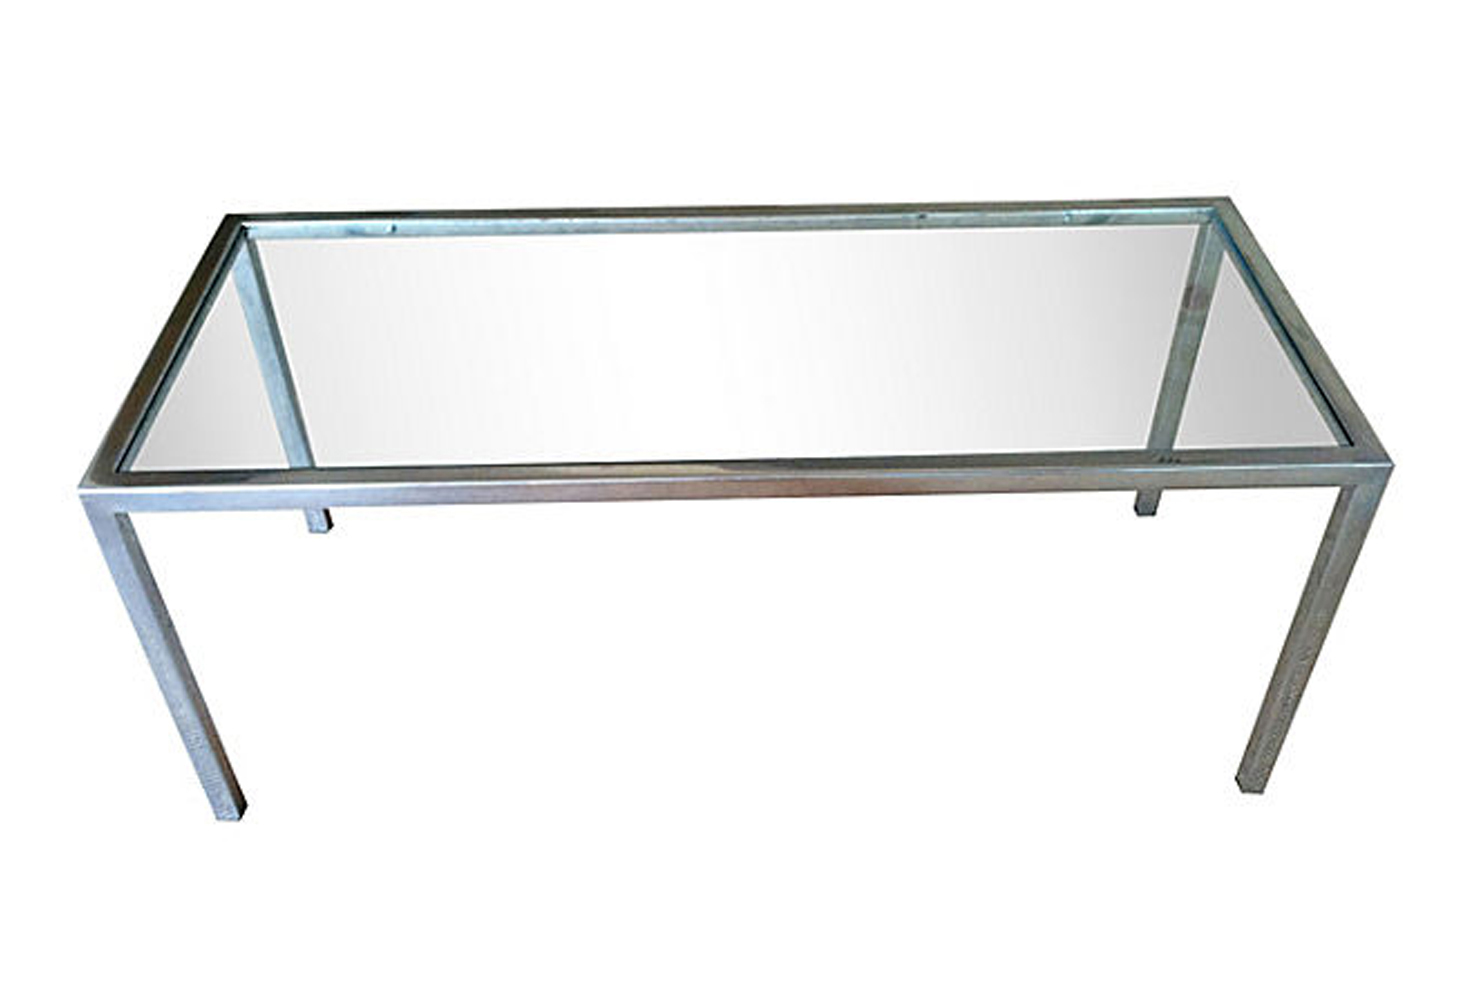 Chrome Glass Coffee Table Interesting Glass Coffee Table Can Be Of Unusual Style Unique And Functional Shower Bench Designs (View 4 of 10)